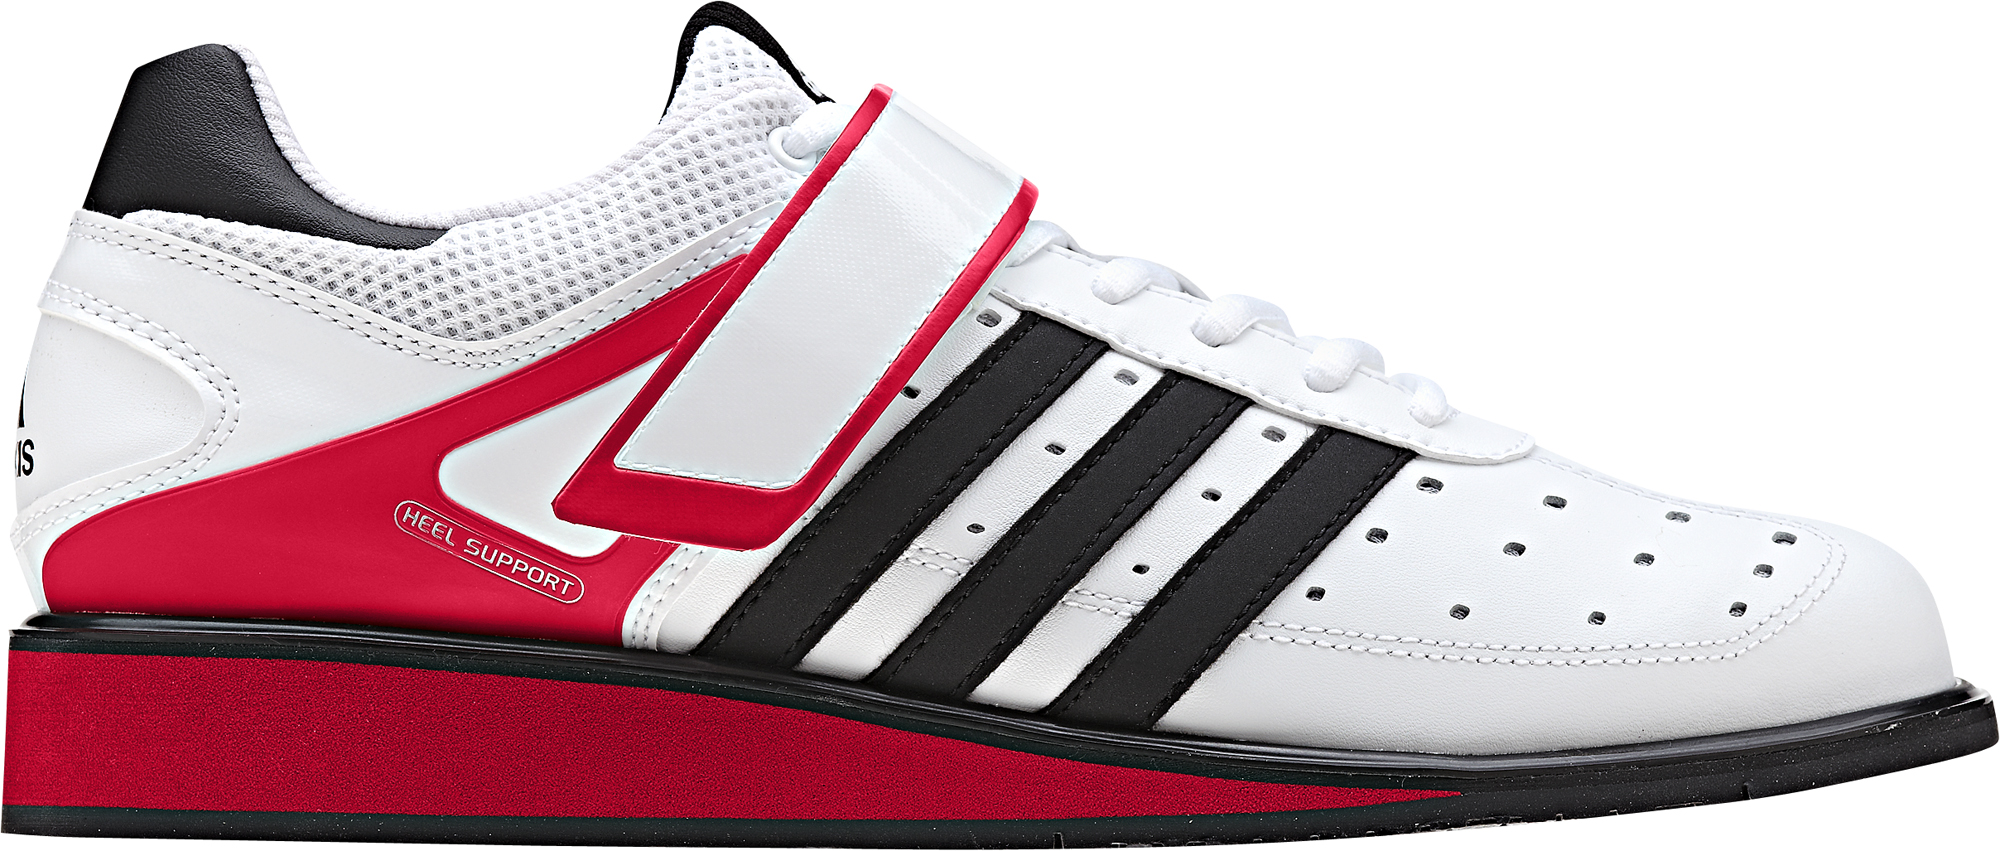 WhiteRed G17563 Adidas Power Perfect 2.0 Weight Lifting